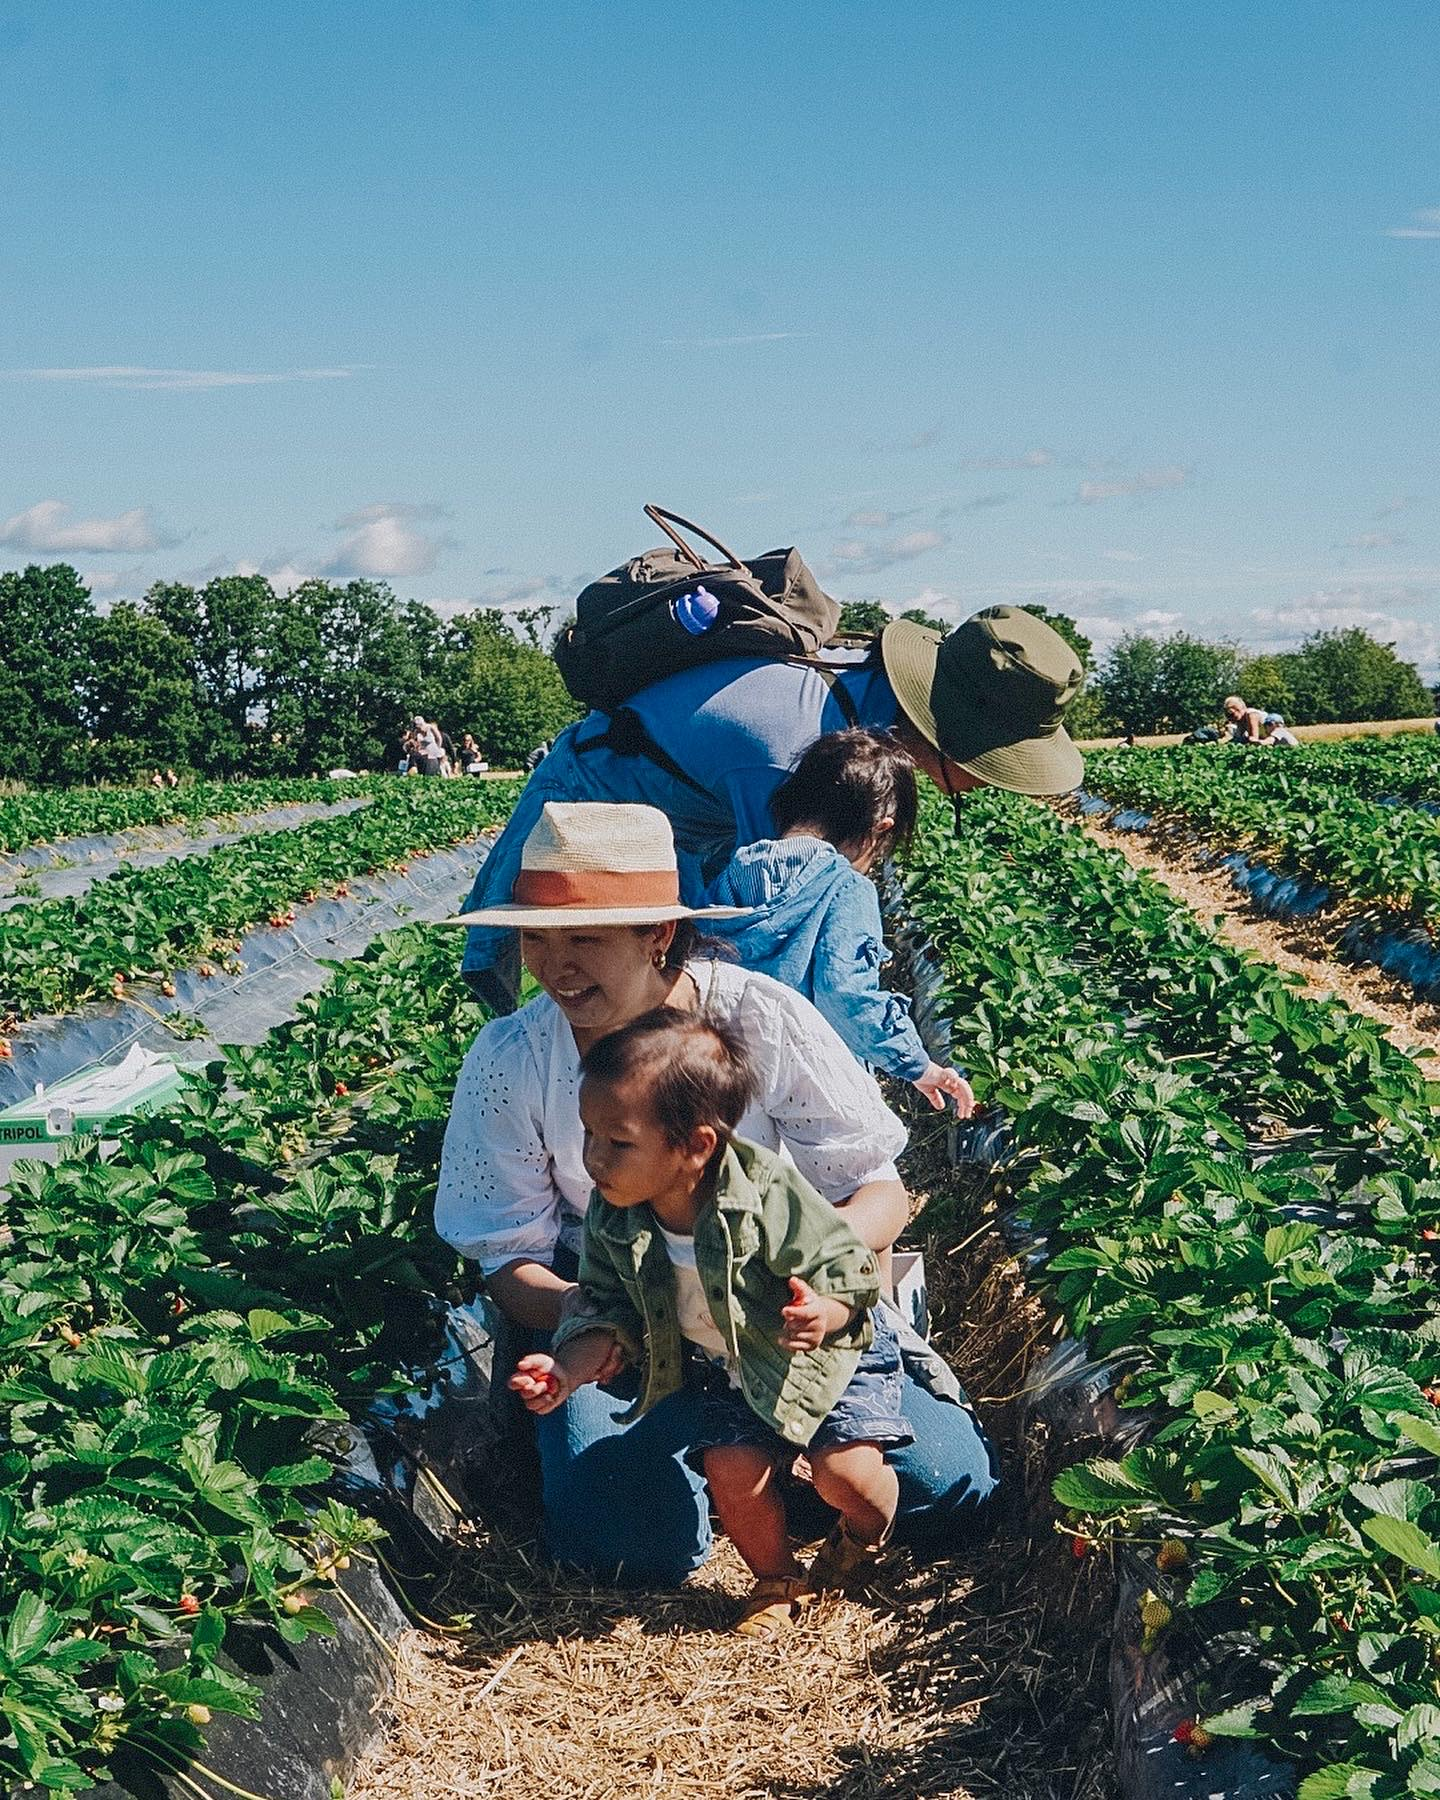 Picking strawberries at a farm in summer.